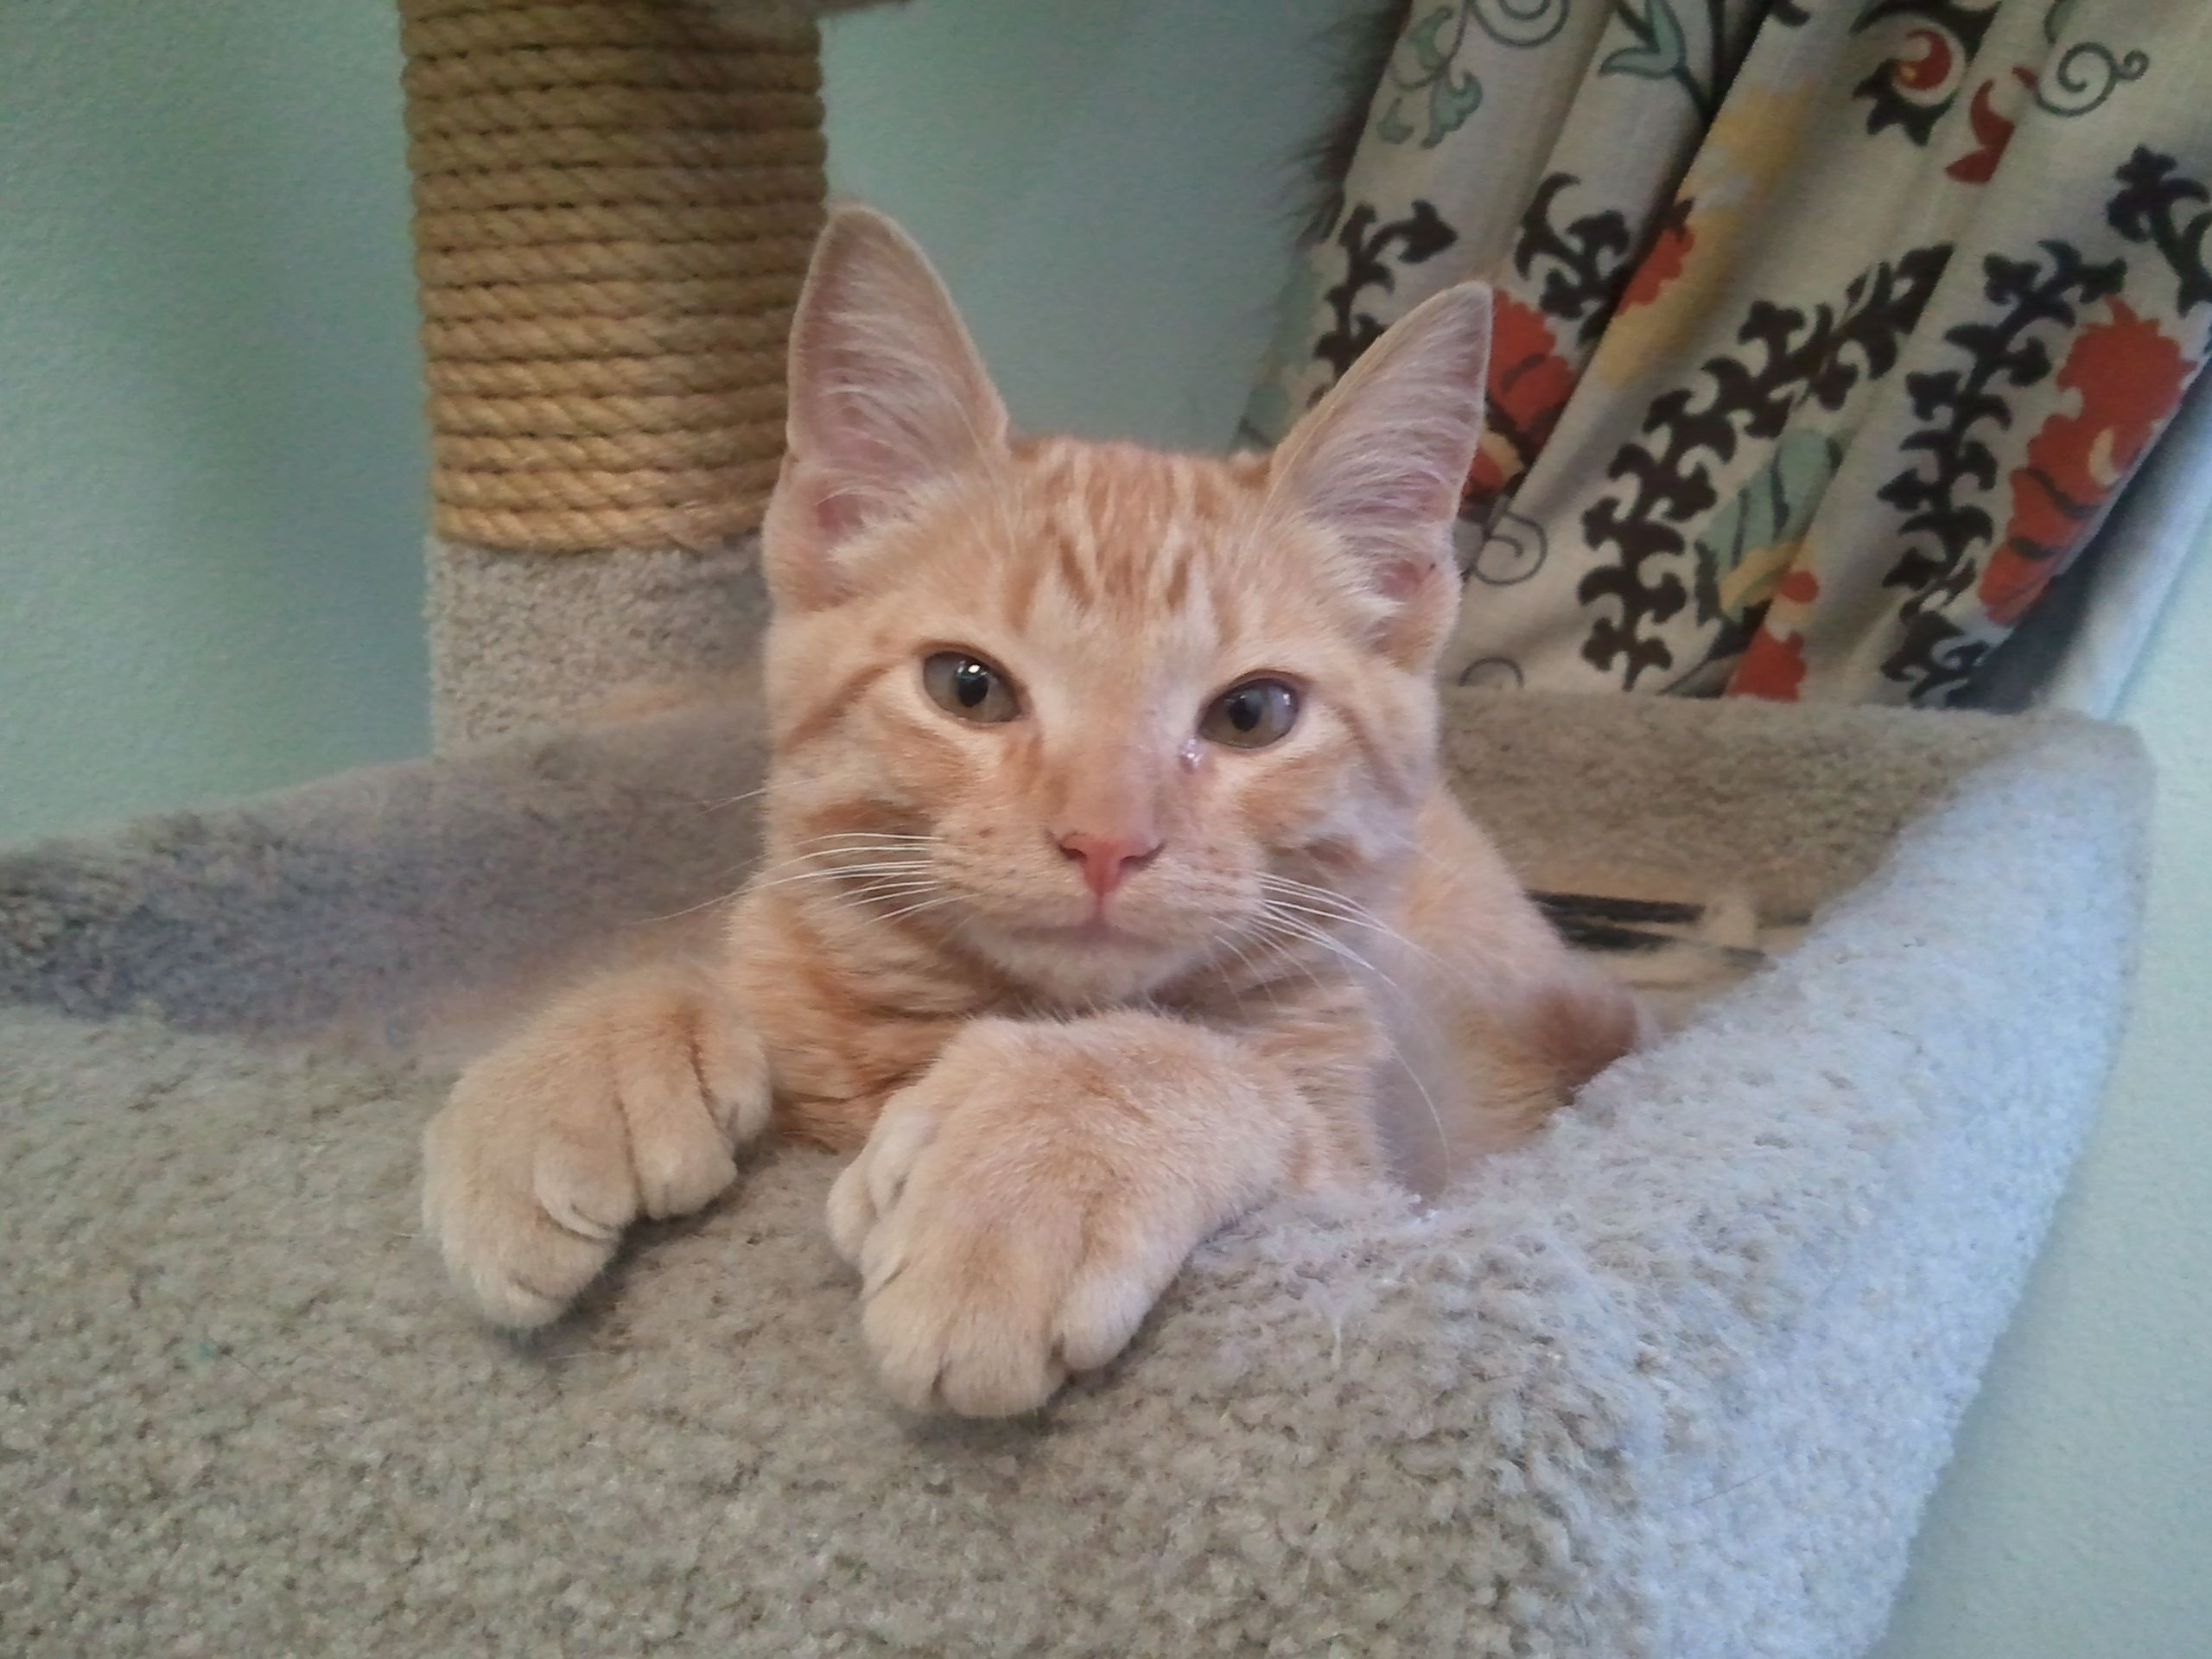 Meet our new kitten named Kevin. He's a crazy polydactyl